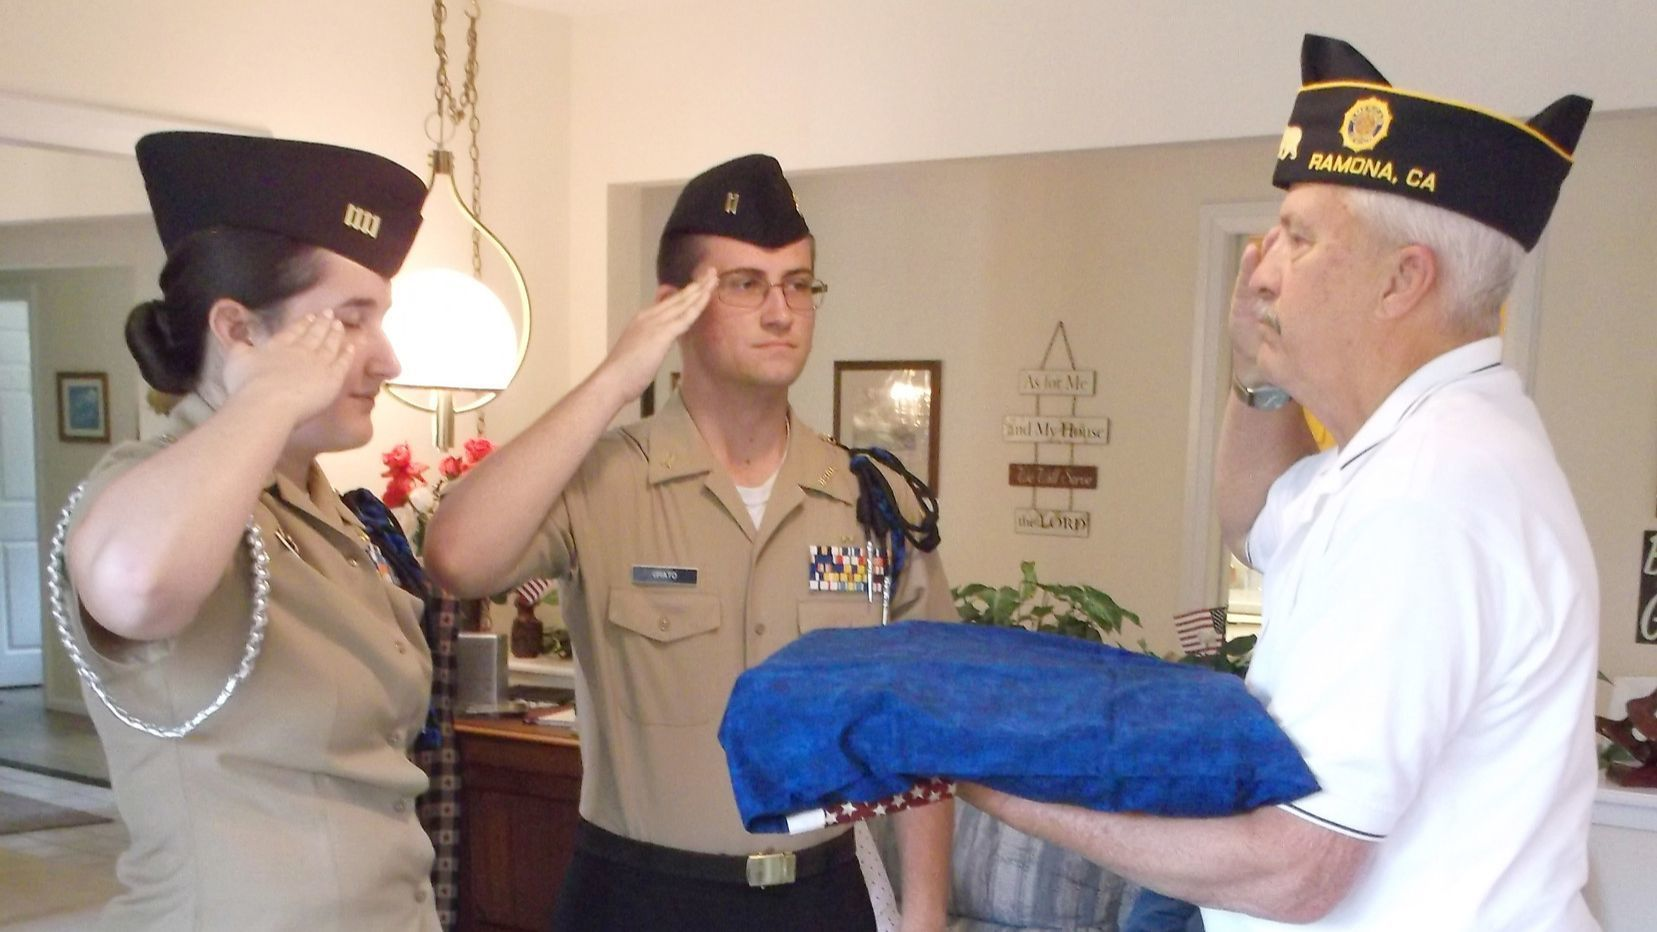 Holding his Quilt of Valor, Michael Thweatt returns a salute from NJROTC cadets Marissa Houry and Michael Grato.